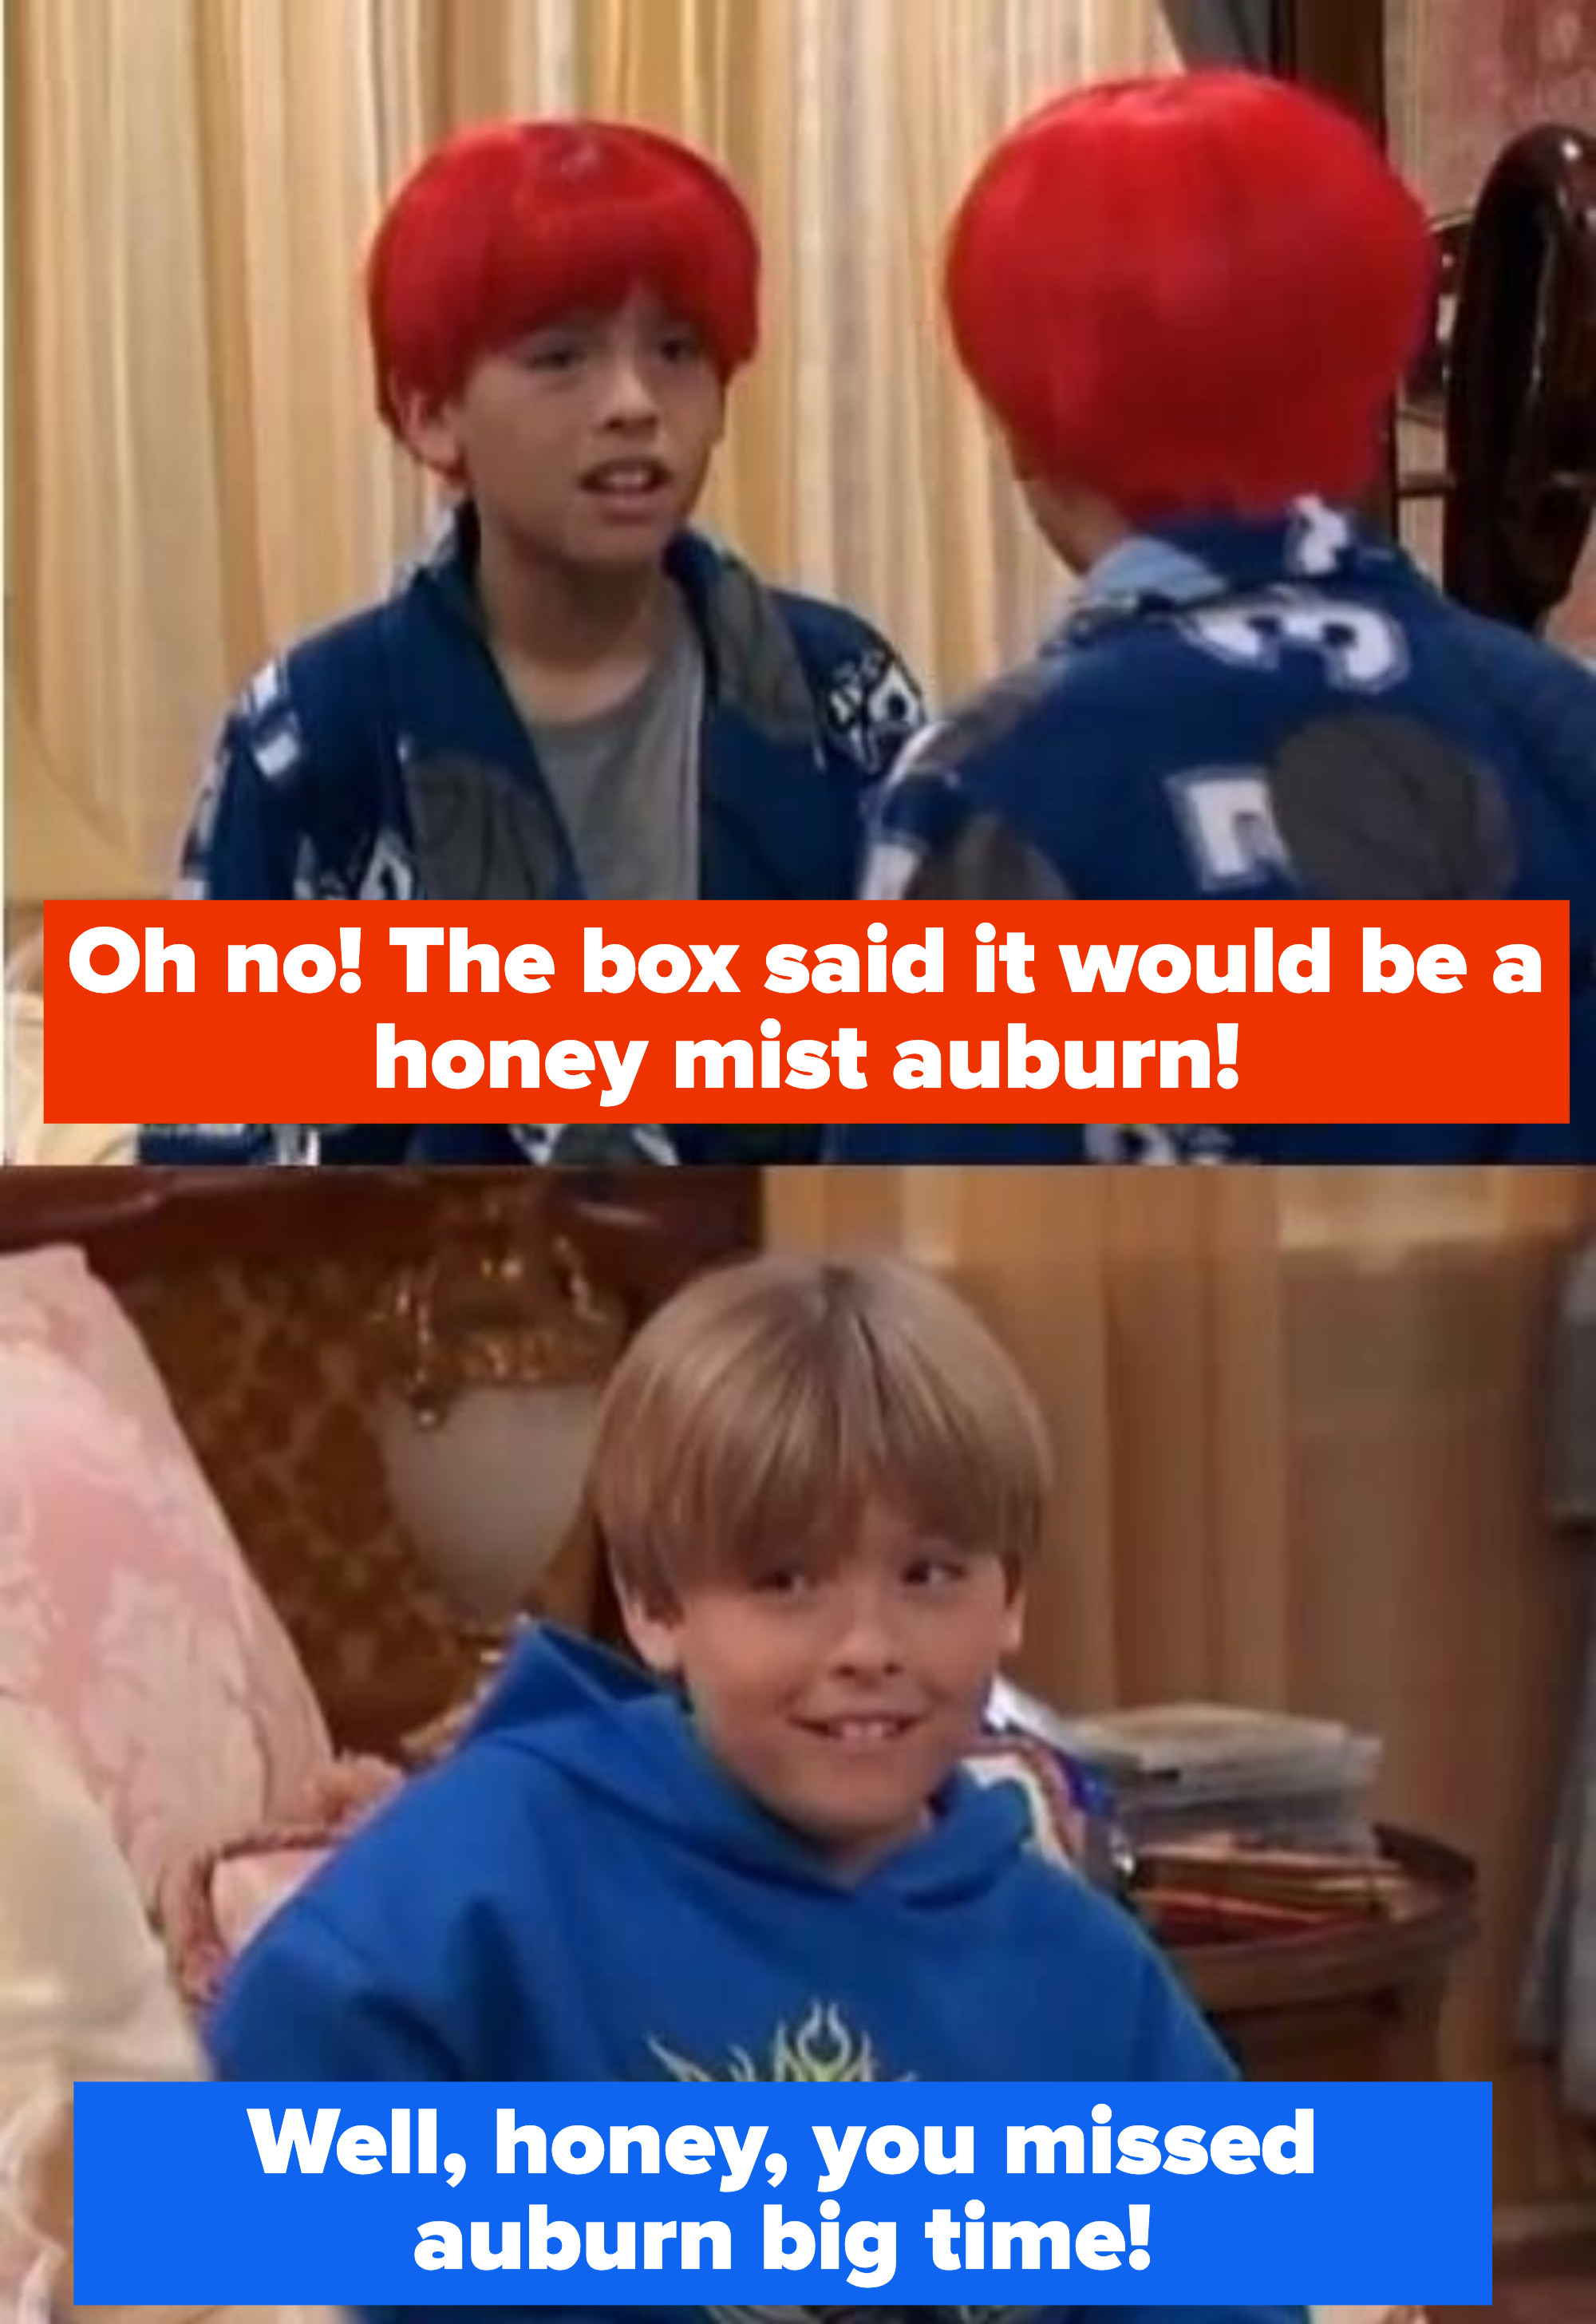 """Cody says """"Oh no! The box said it would be a honey mist auburn!"""" and Zack replies """"Well, honey, you missed auburn big time!"""""""